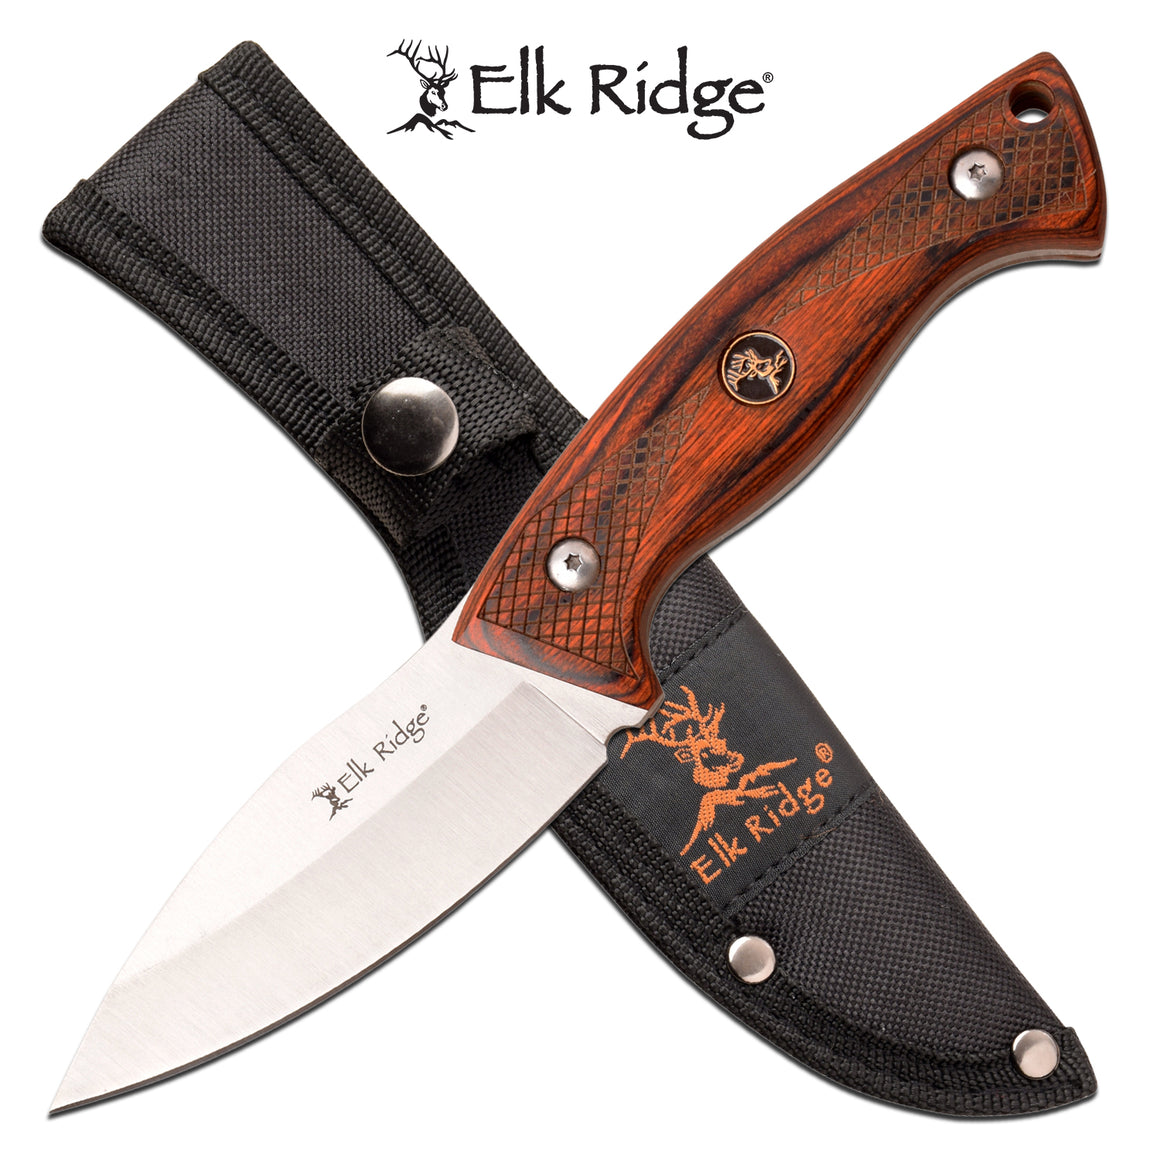 Elk Ridge ER-200-22BR Fixed Blade Knife